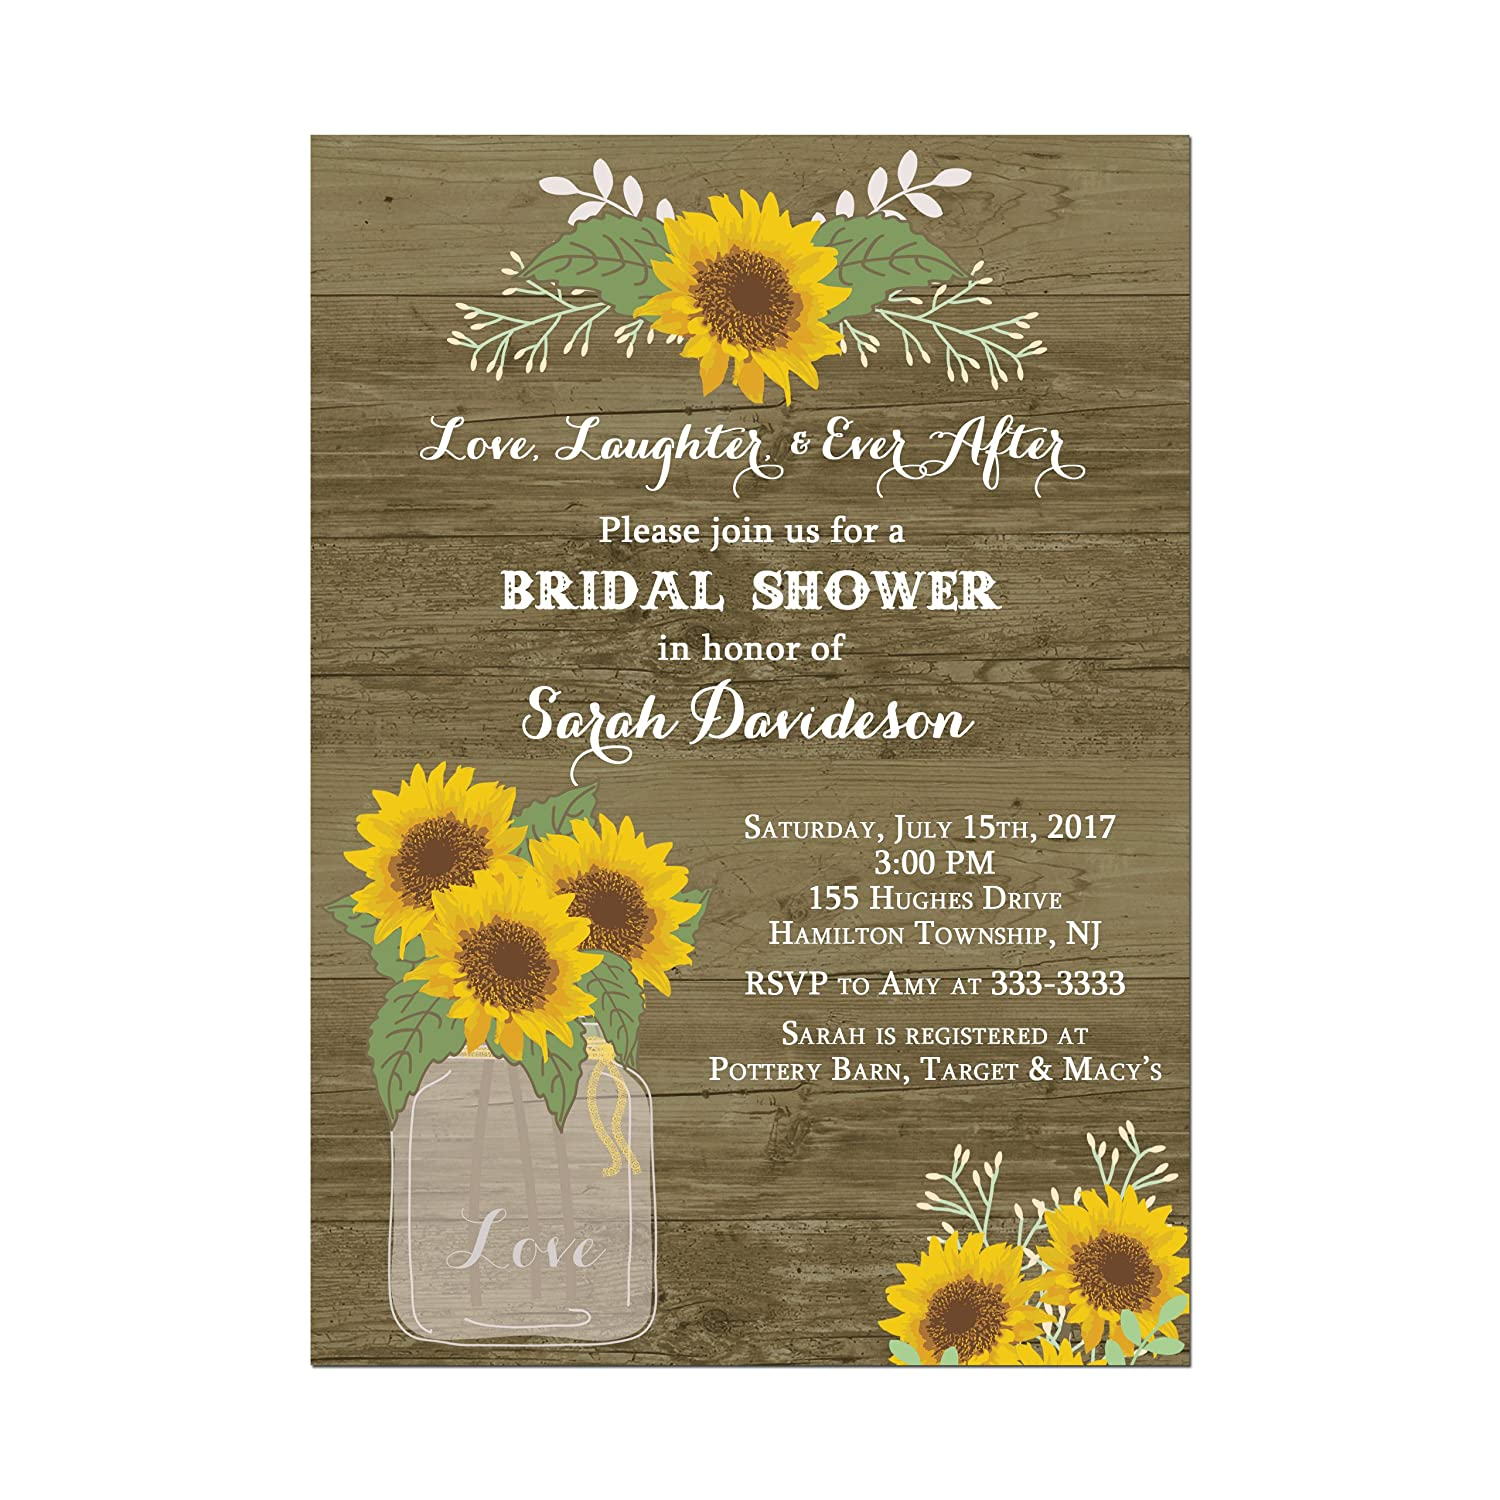 Sunflower Wedding or Bridal Shower Invitations rustic wood design background Set of 10 5x7 inch invitations with white envelopes